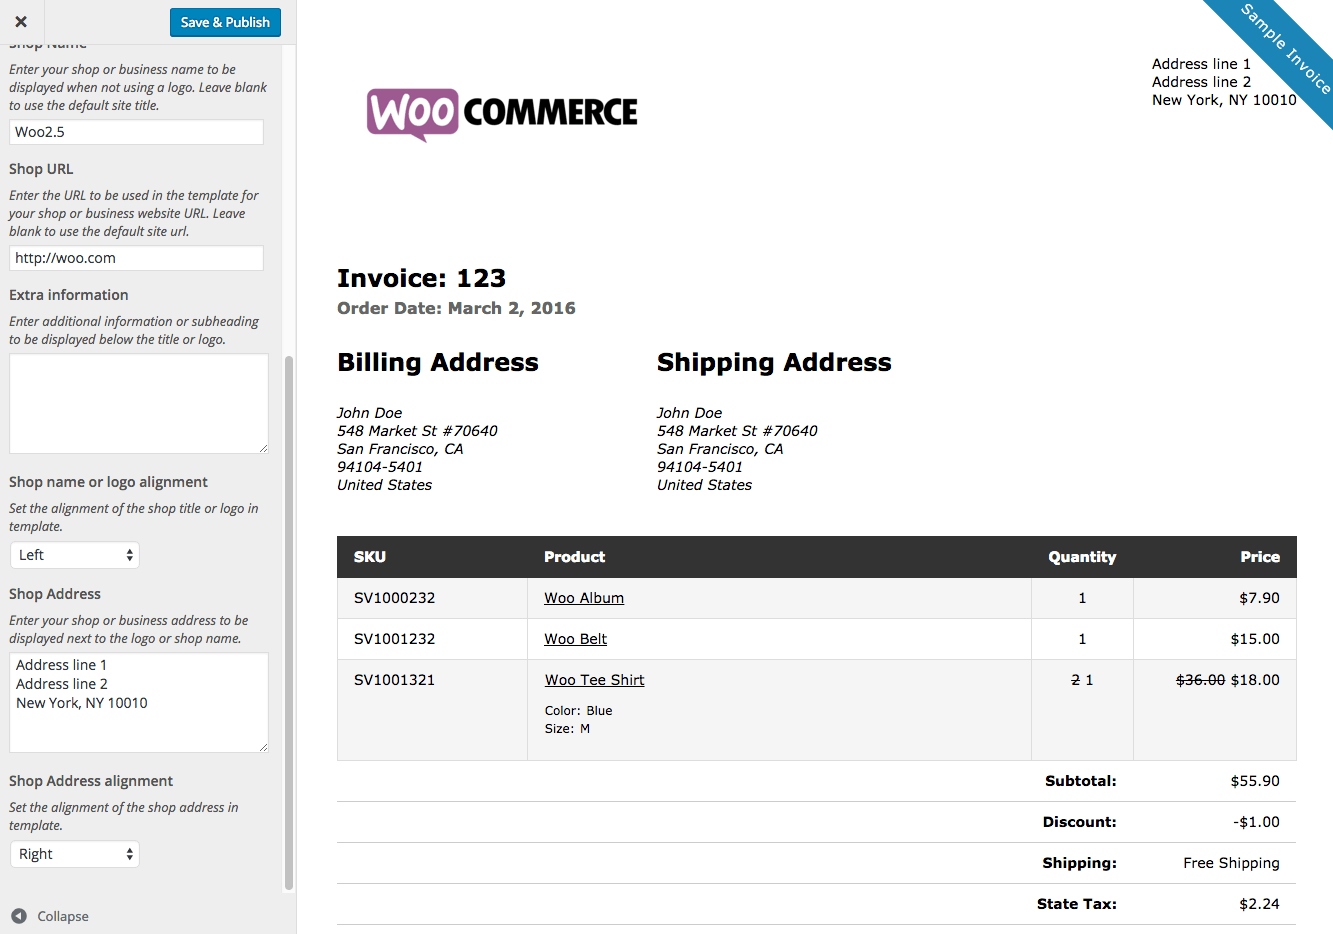 Modaoxus  Pleasing Woocommerce Print Invoices Amp Packing Lists  Woocommerce Docs With Gorgeous Woocommerce Print Invoices  Packing Lists Customizer With Adorable Sephora Return Policy Without Receipt Also Hand Written Receipt In Addition Best Buy Return Policy With Receipt And Taxi Cab Receipts Printable As Well As Read Receipt In Outlook Additionally Receipt Manager From Docswoocommercecom With Modaoxus  Gorgeous Woocommerce Print Invoices Amp Packing Lists  Woocommerce Docs With Adorable Woocommerce Print Invoices  Packing Lists Customizer And Pleasing Sephora Return Policy Without Receipt Also Hand Written Receipt In Addition Best Buy Return Policy With Receipt From Docswoocommercecom